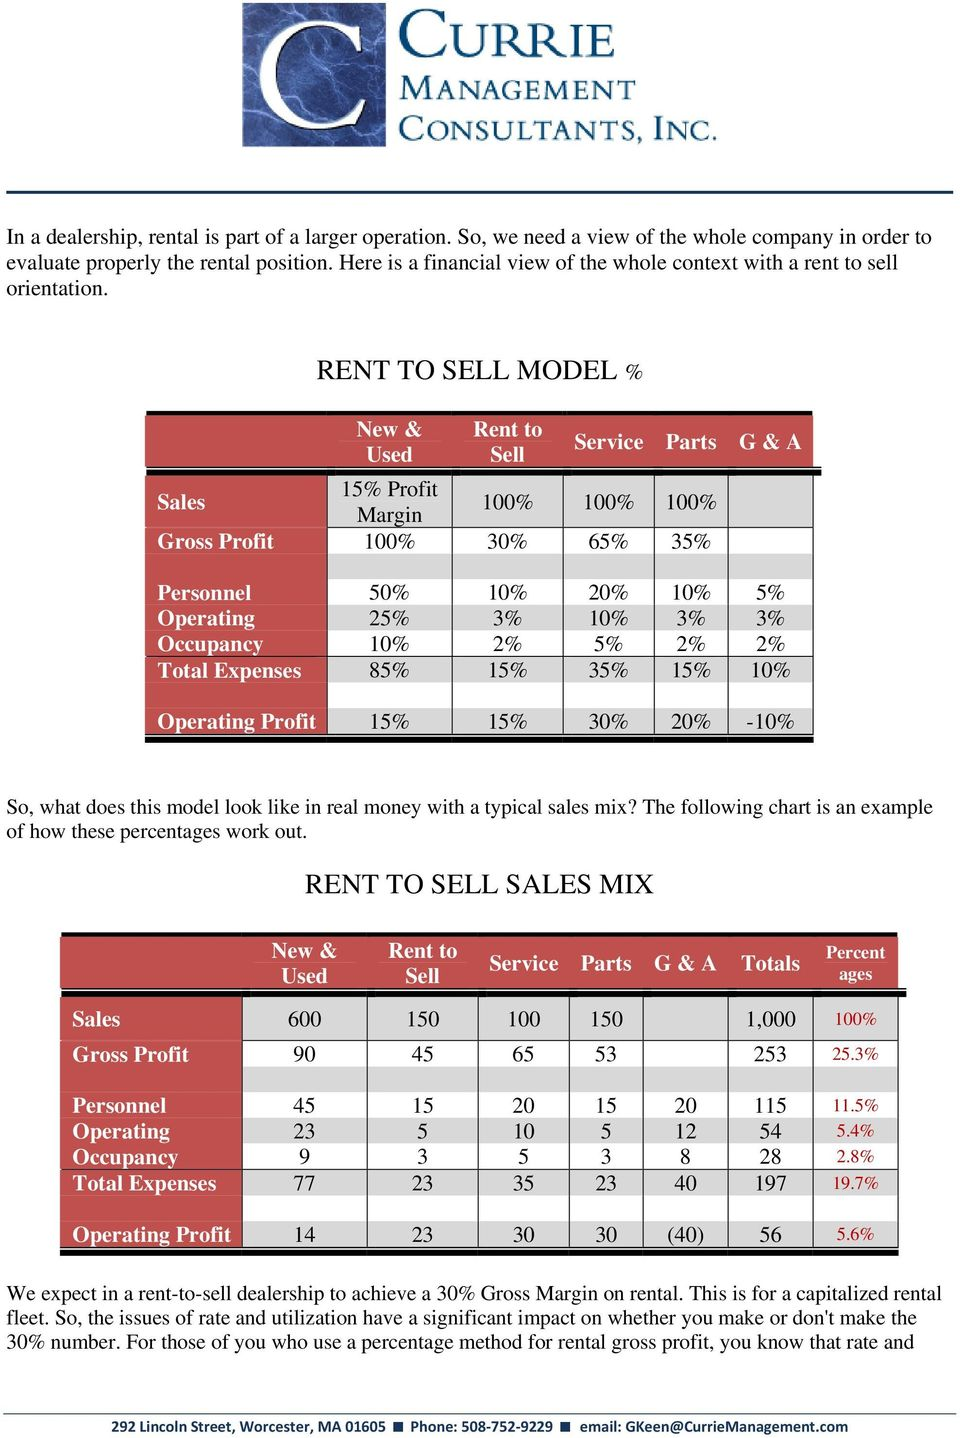 Sales RENT TO SELL MODEL % New & Used 15% Profit Margin Rent to Sell Service Parts G & A 100% 100% 100% Gross Profit 100% 30% 65% 35% Personnel 50% 10% 20% 10% 5% Operating 25% 3% 10% 3% 3% Occupancy